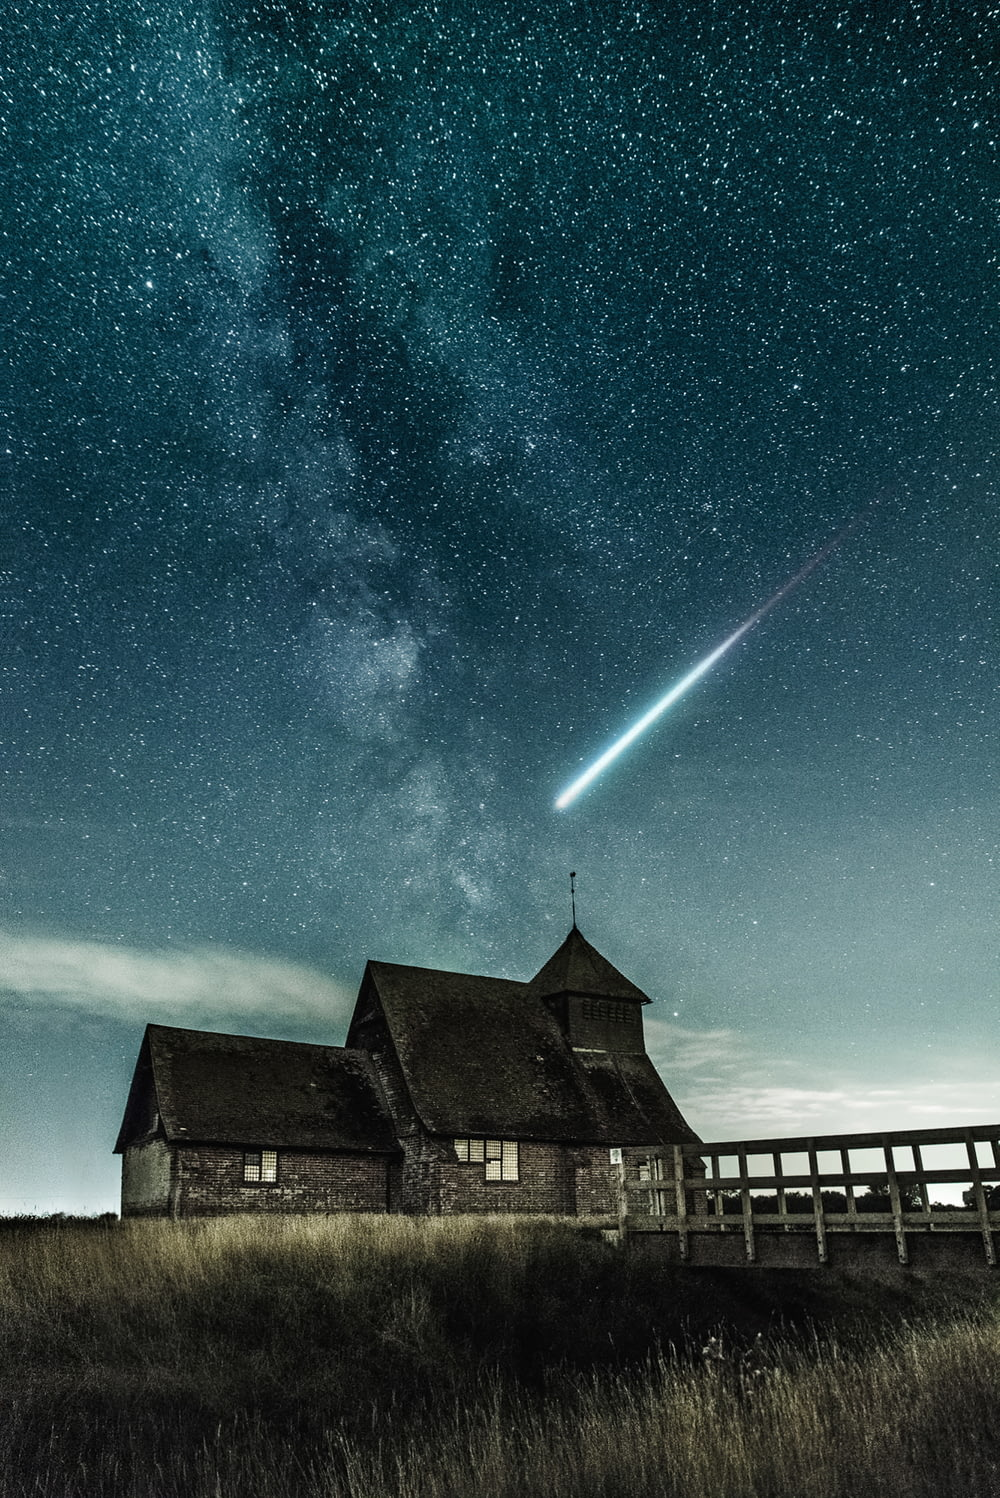 brown house under stary night